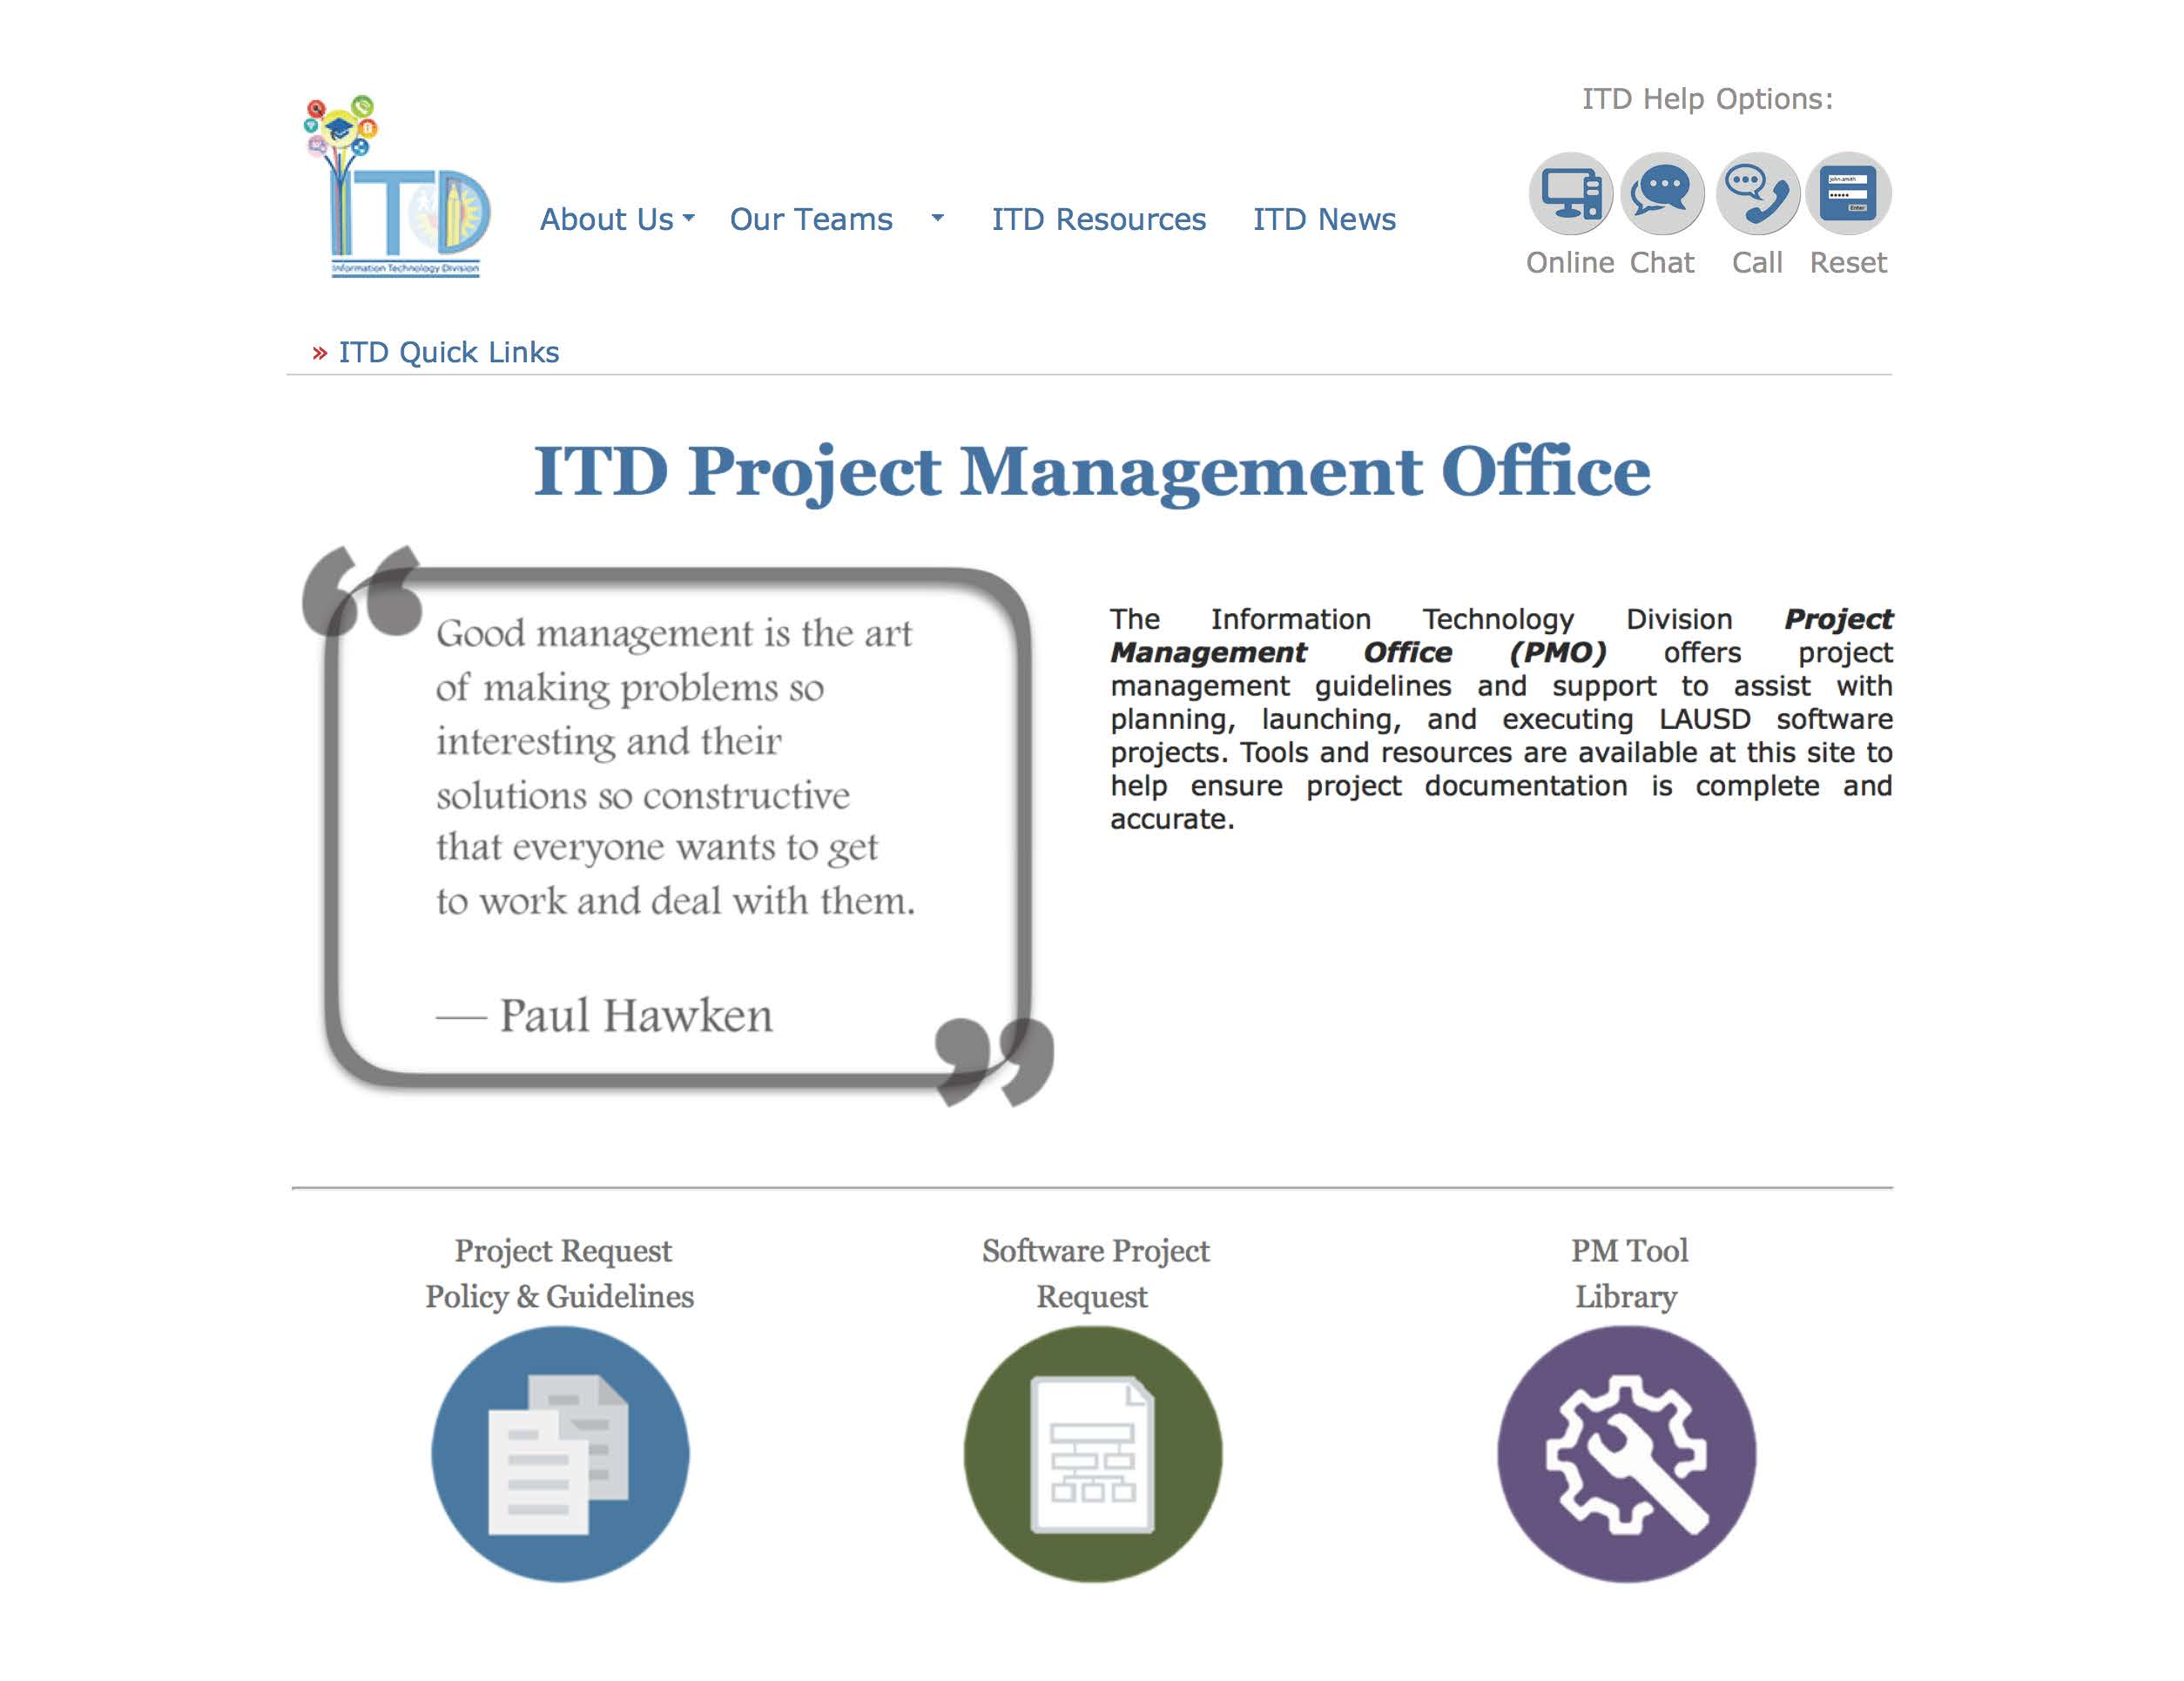 ITD Project Management Office